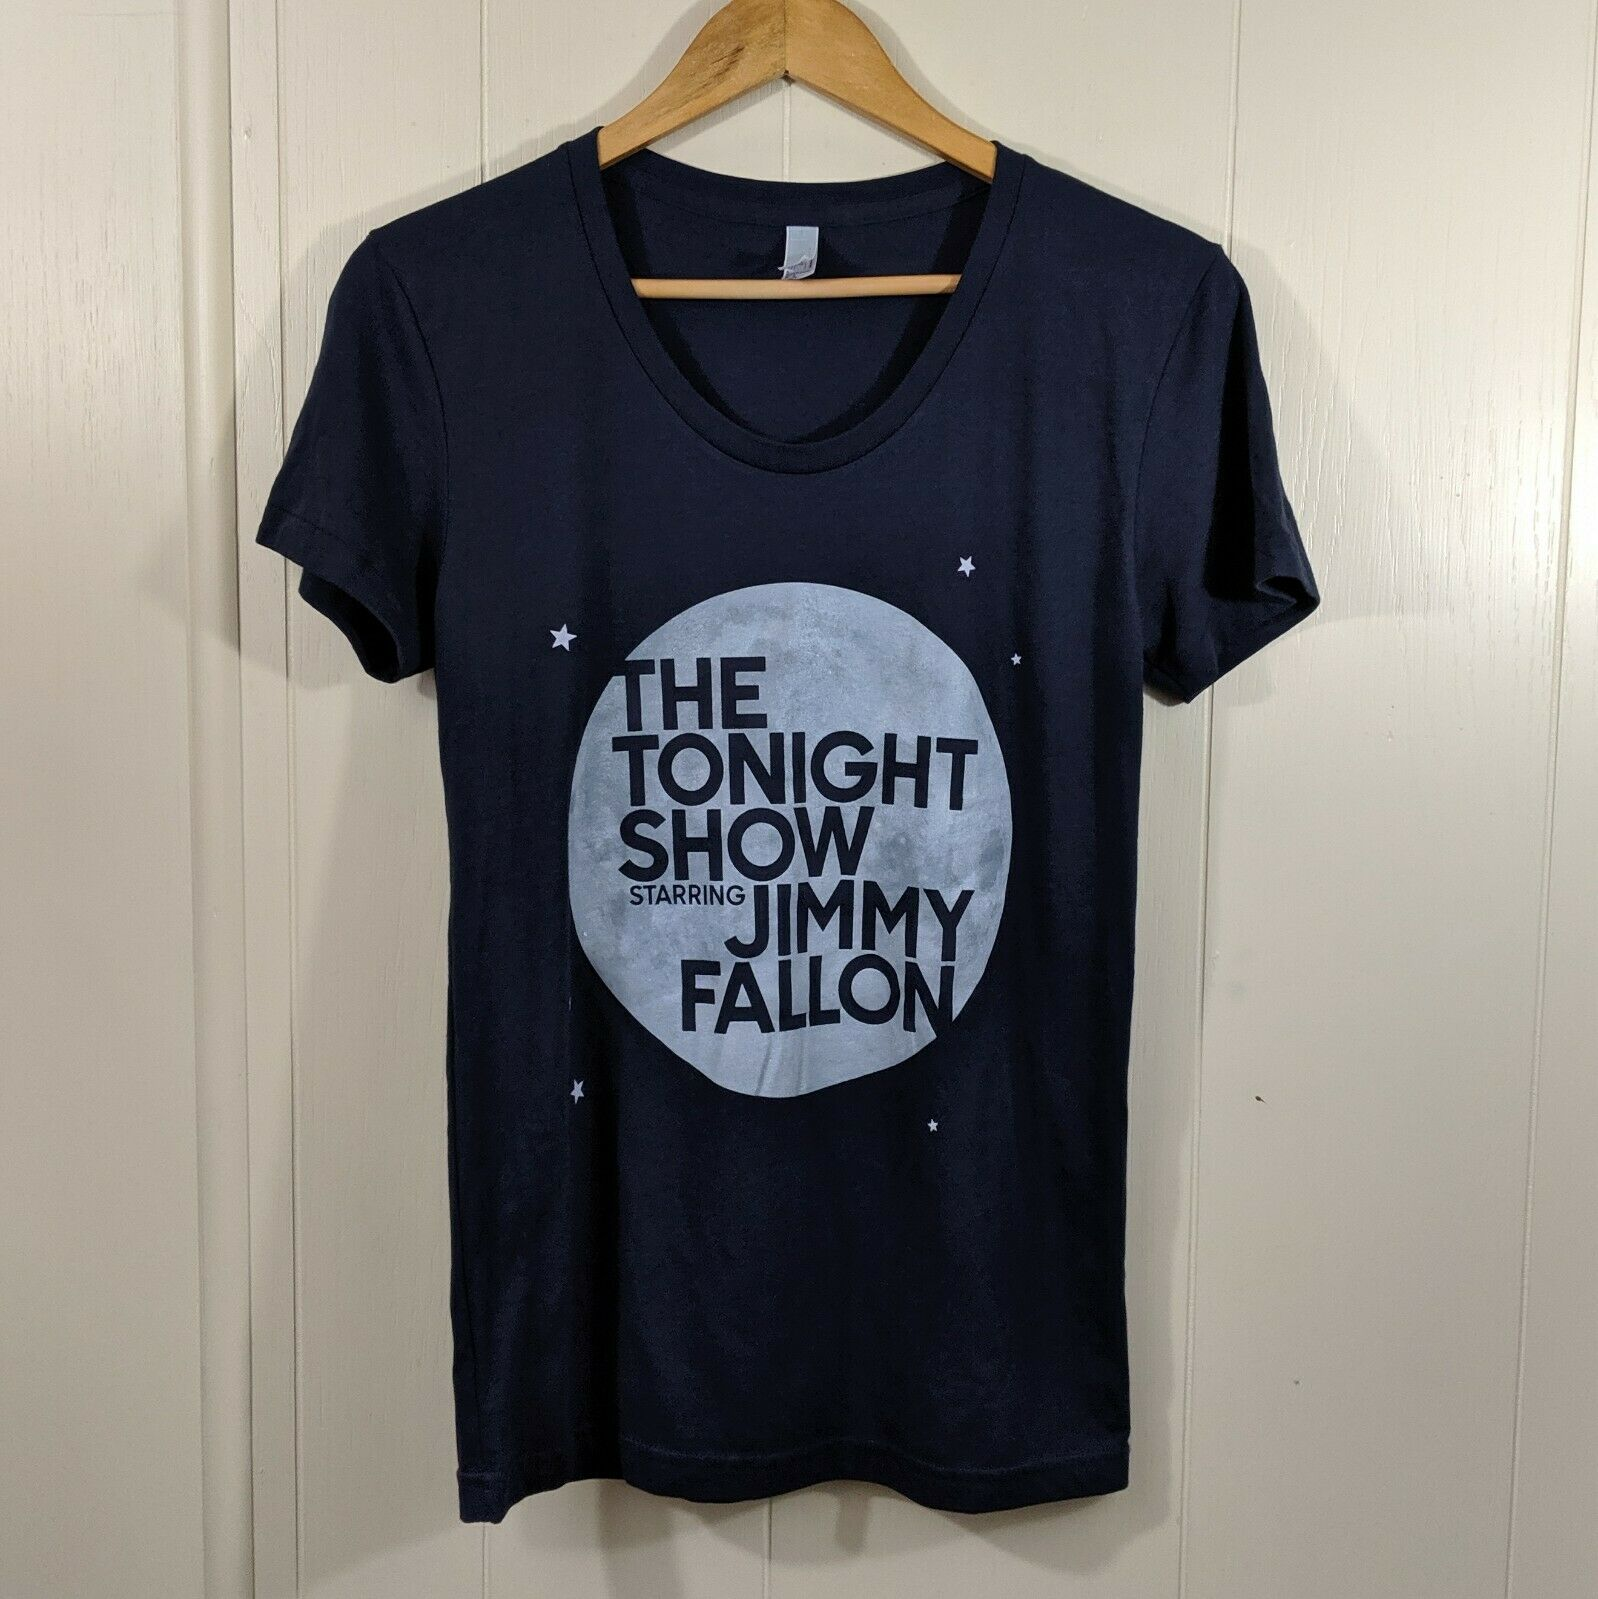 <font><b>The</b></font> <font><b>Tonight</b></font> <font><b>Show</b></font> Starring Jimmy Fallon Womens T-Shirt Tee Blue Sz L image